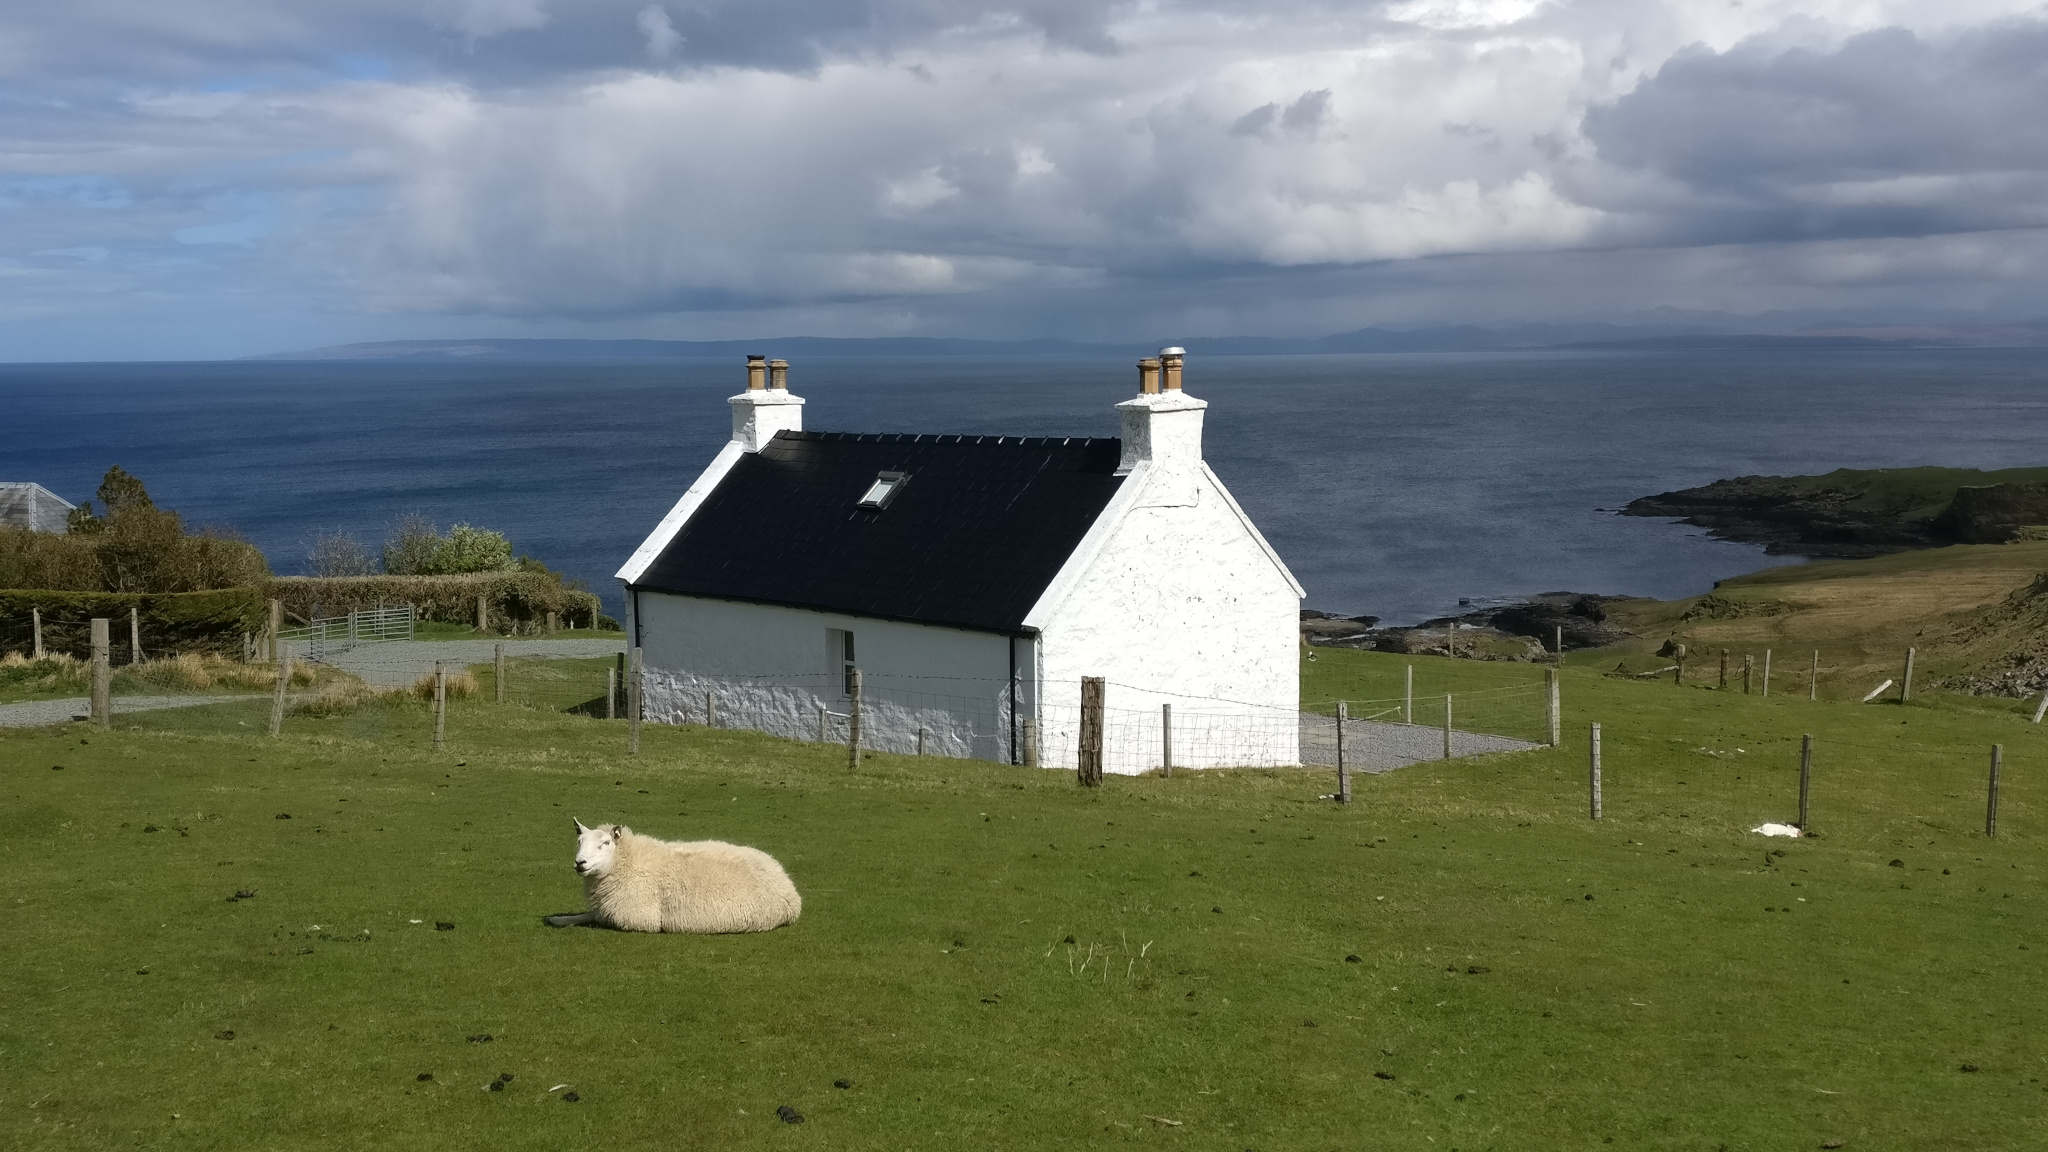 the most common local on the Isle of Skye, in Scotland